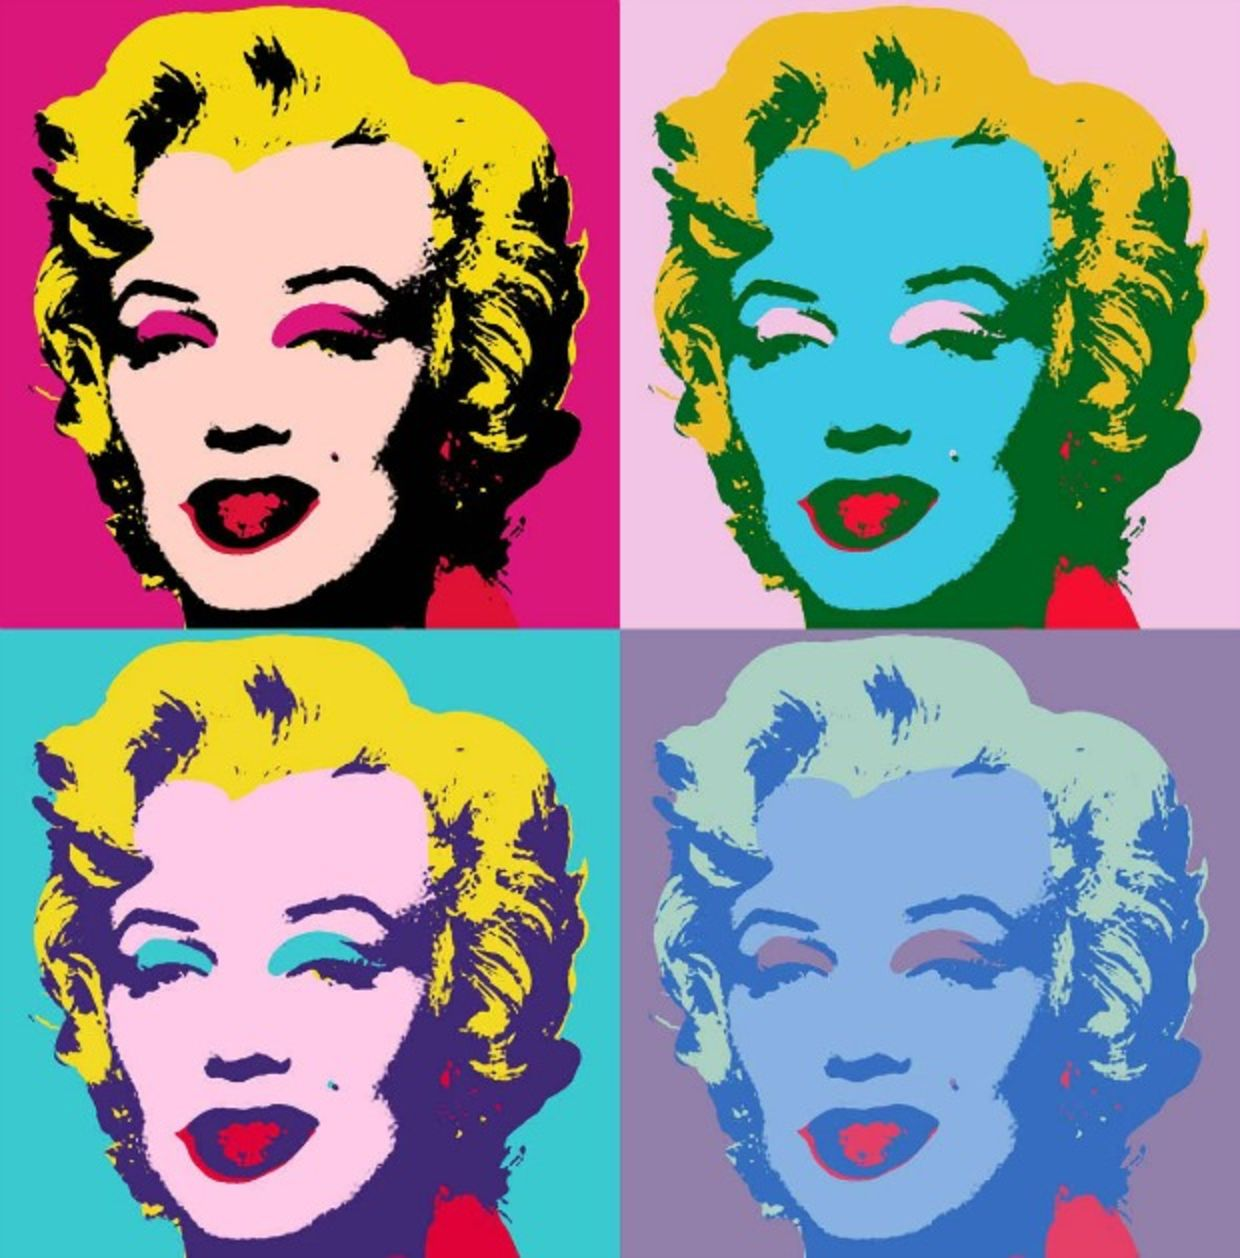 """andy warhol s work personal opinion """"a"""" for """"work of andy warhol,"""" """"b"""" for """"not the work of andy  and will give a preliminary expert opinion in 48  andy warhol's."""